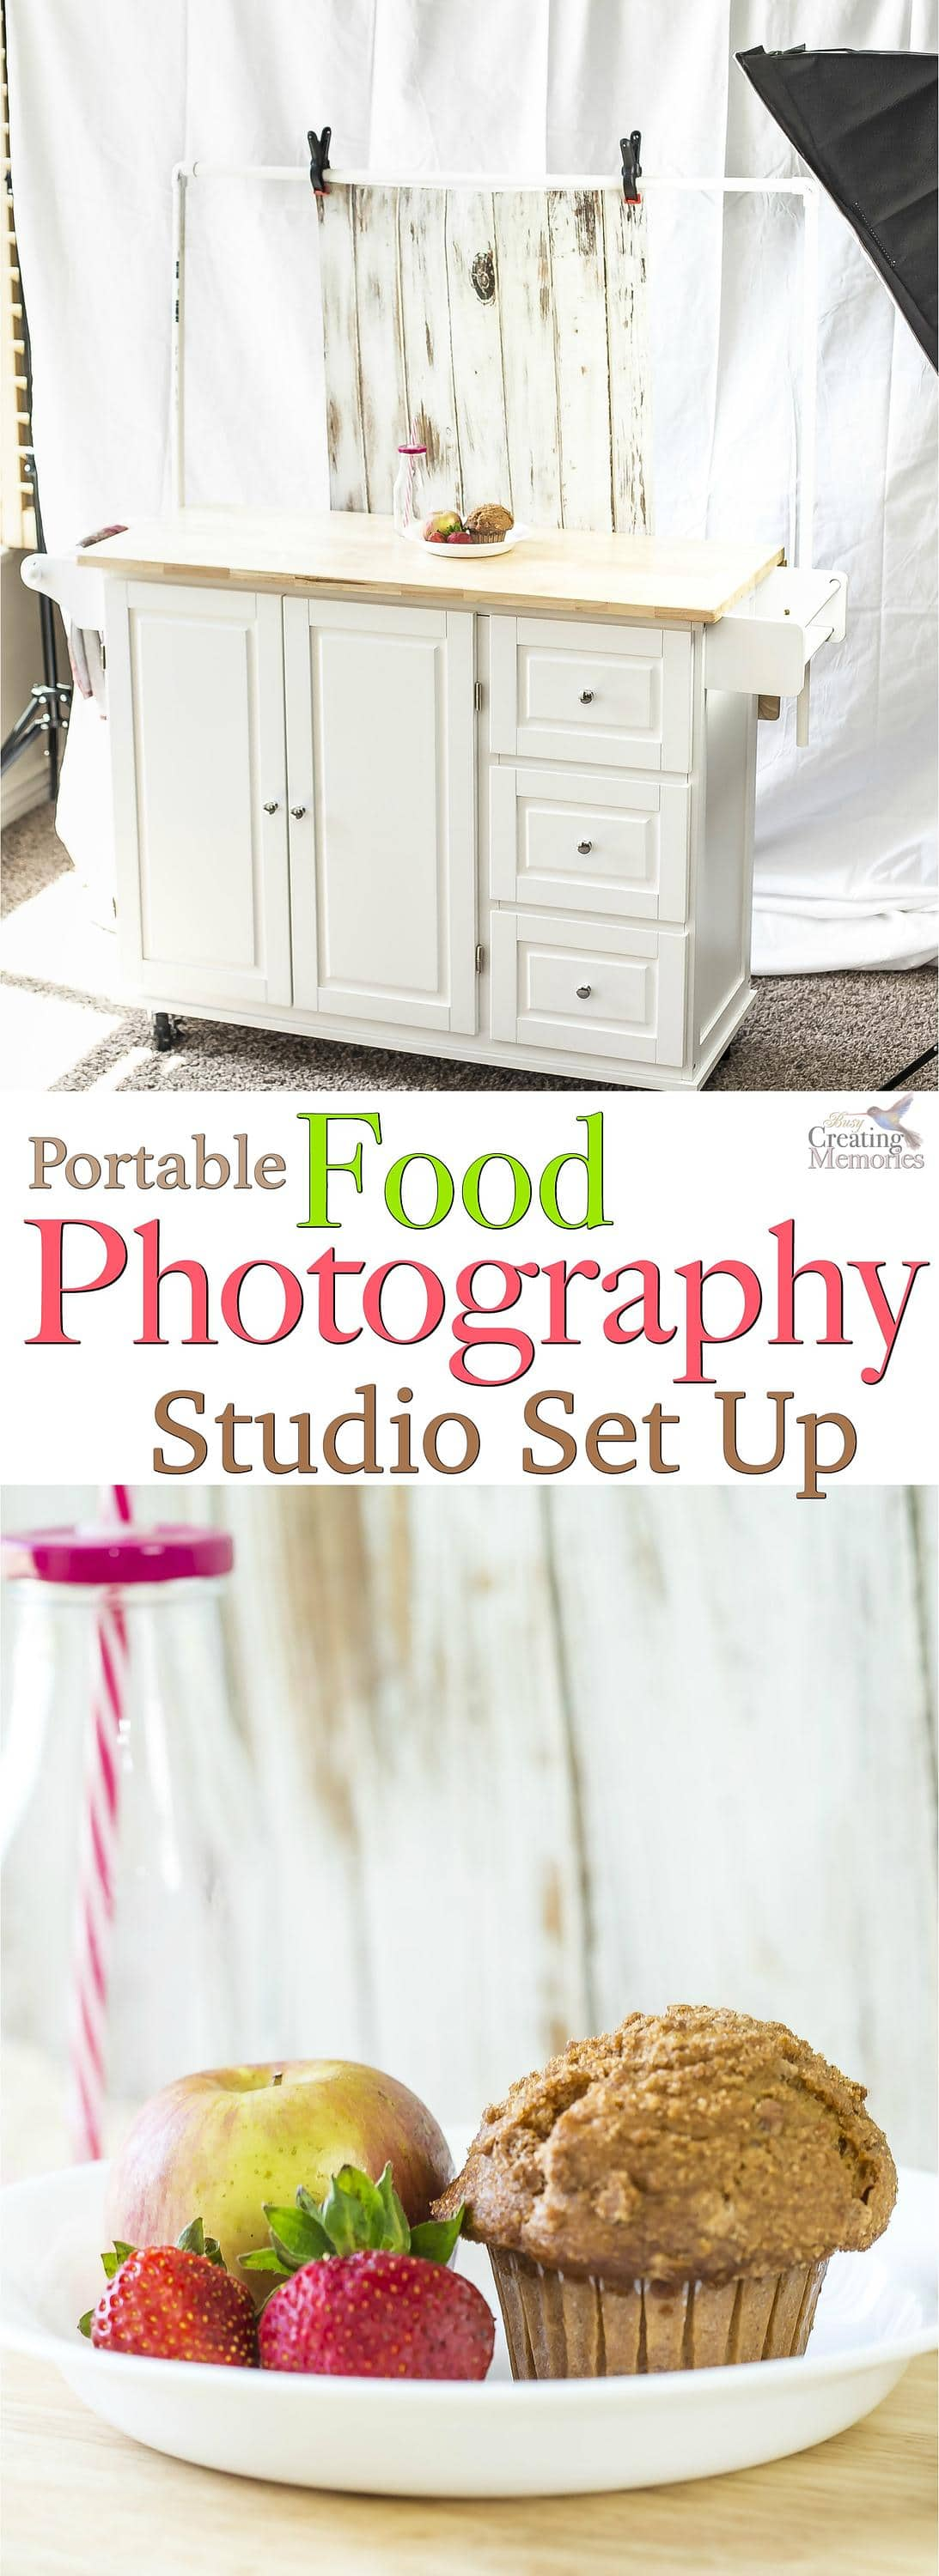 A food photographer's dream come true! Get the inside look at this portable food photography studio! This awesome studio setup is great for food and craft photography. It also features a simple DIY backdrop frame tutorial